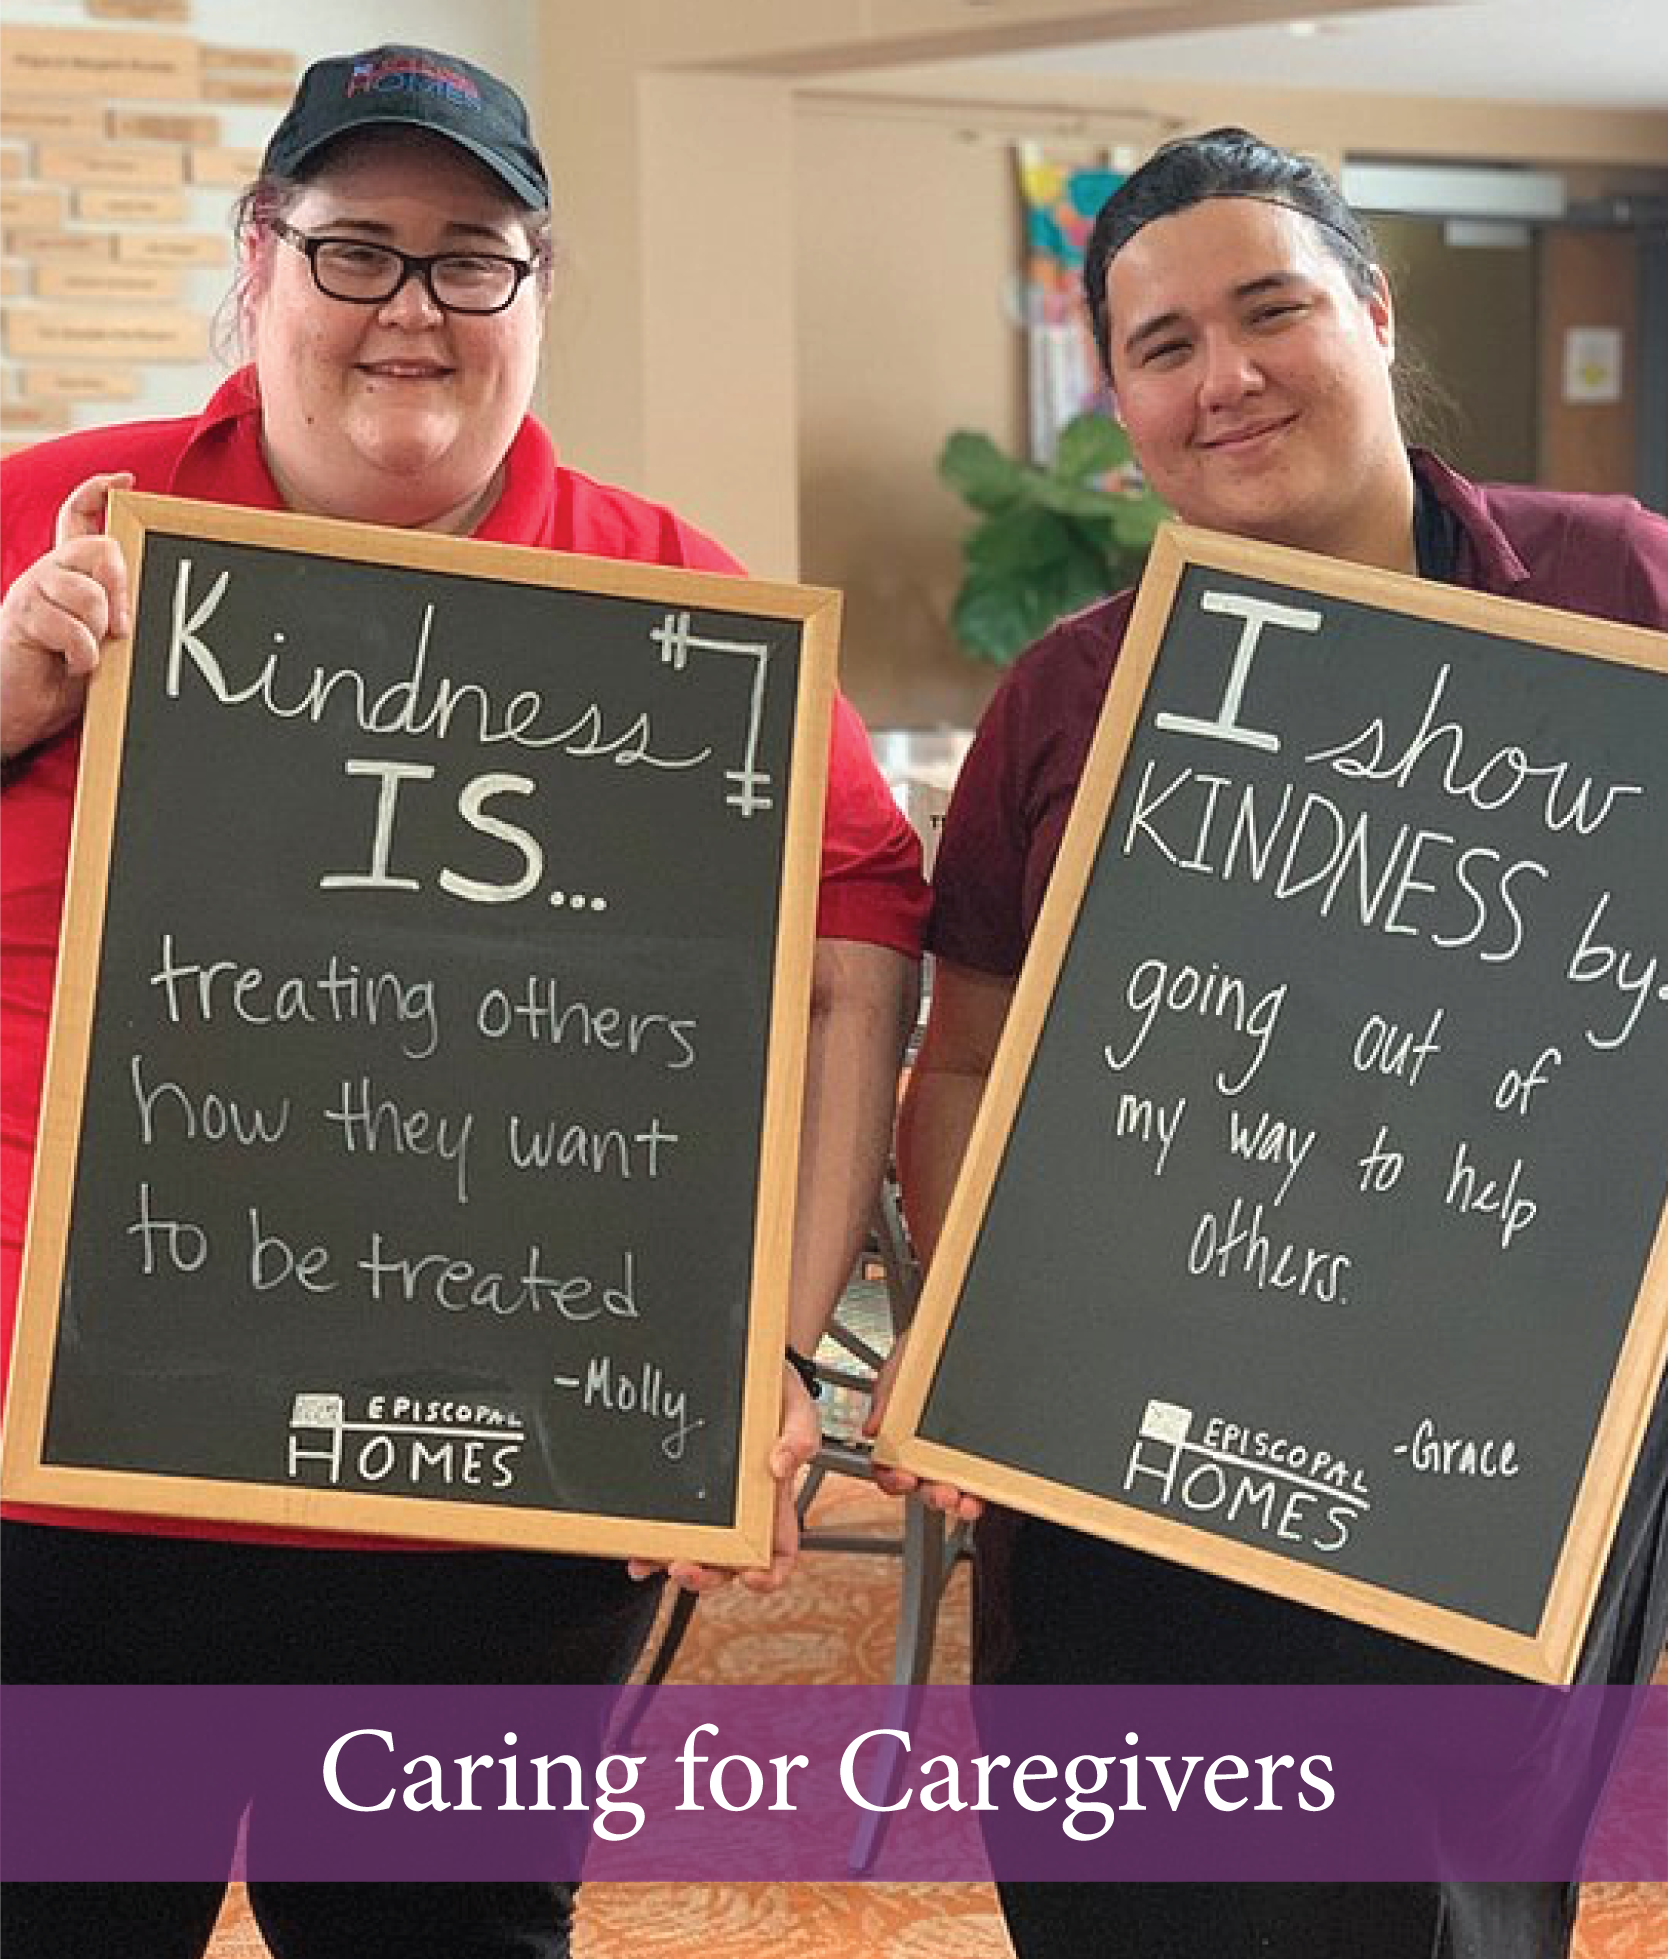 Episcopal Homes caring for caregivers